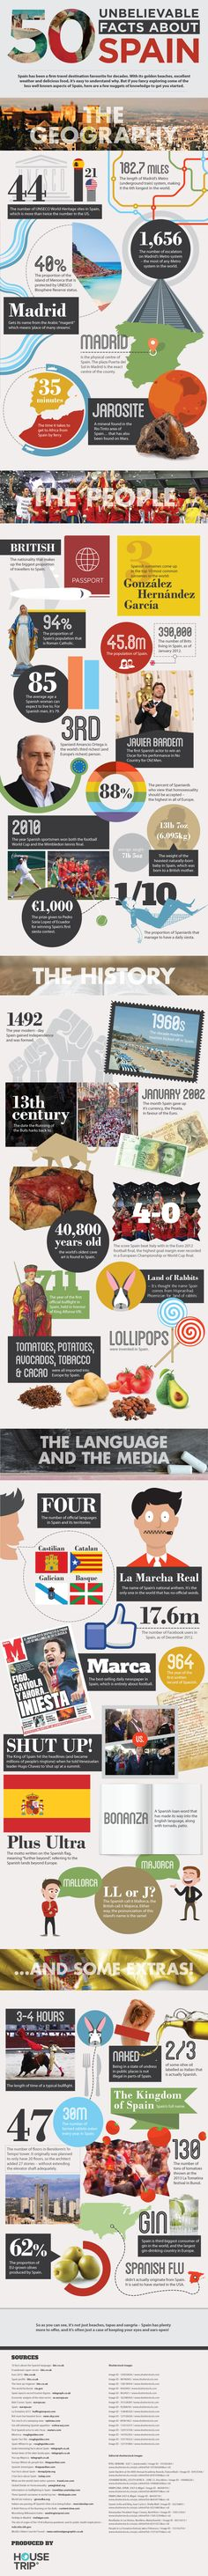 50 Unbelievable Facts about Spain #Spain #Travel (one of my bucket list places) www.enternational.world ventures.biz